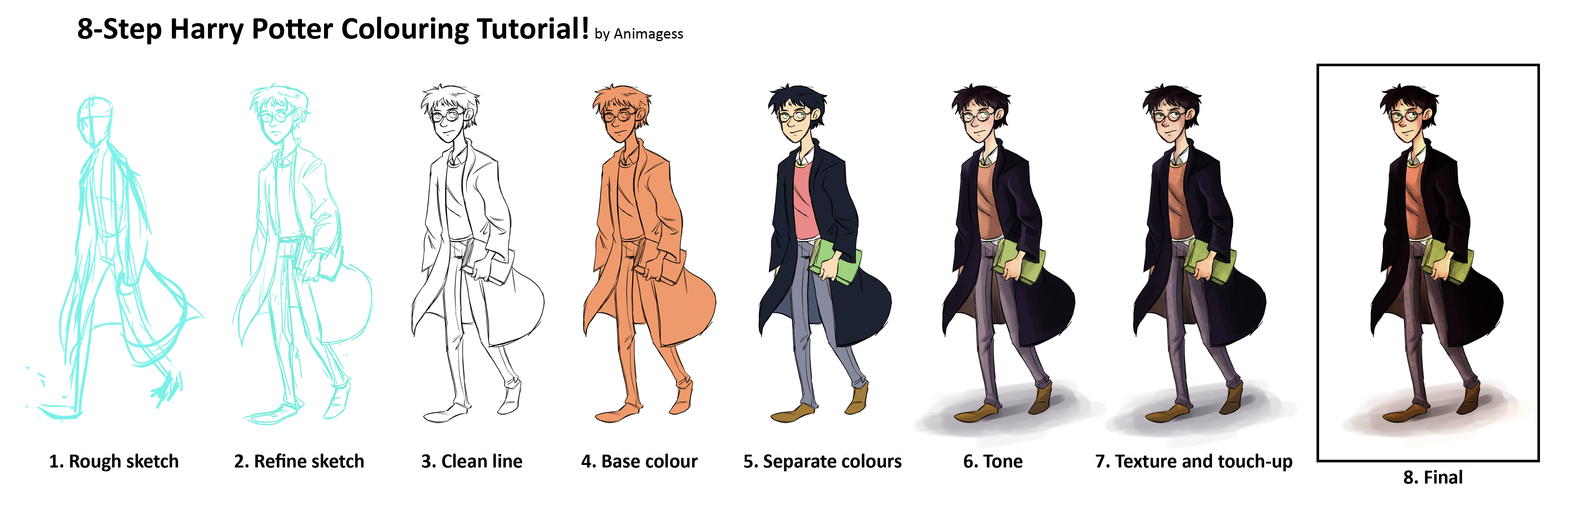 Harry Potter Coloring Tutorial by animagess on DeviantArt